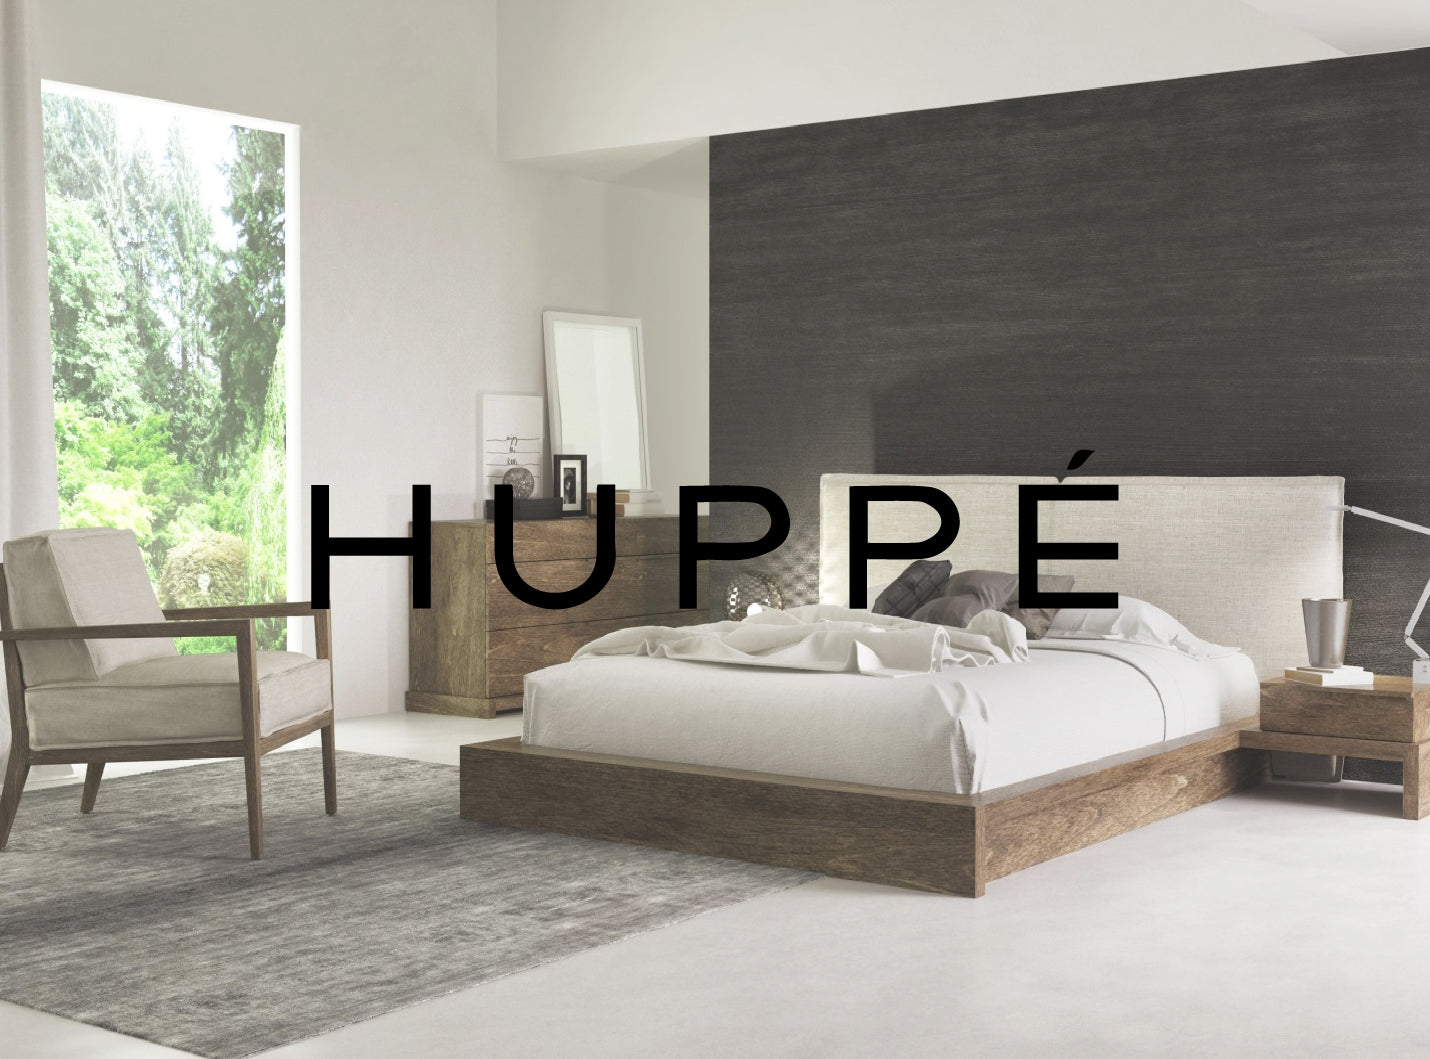 Huppe Furniture collection at Grayson Home